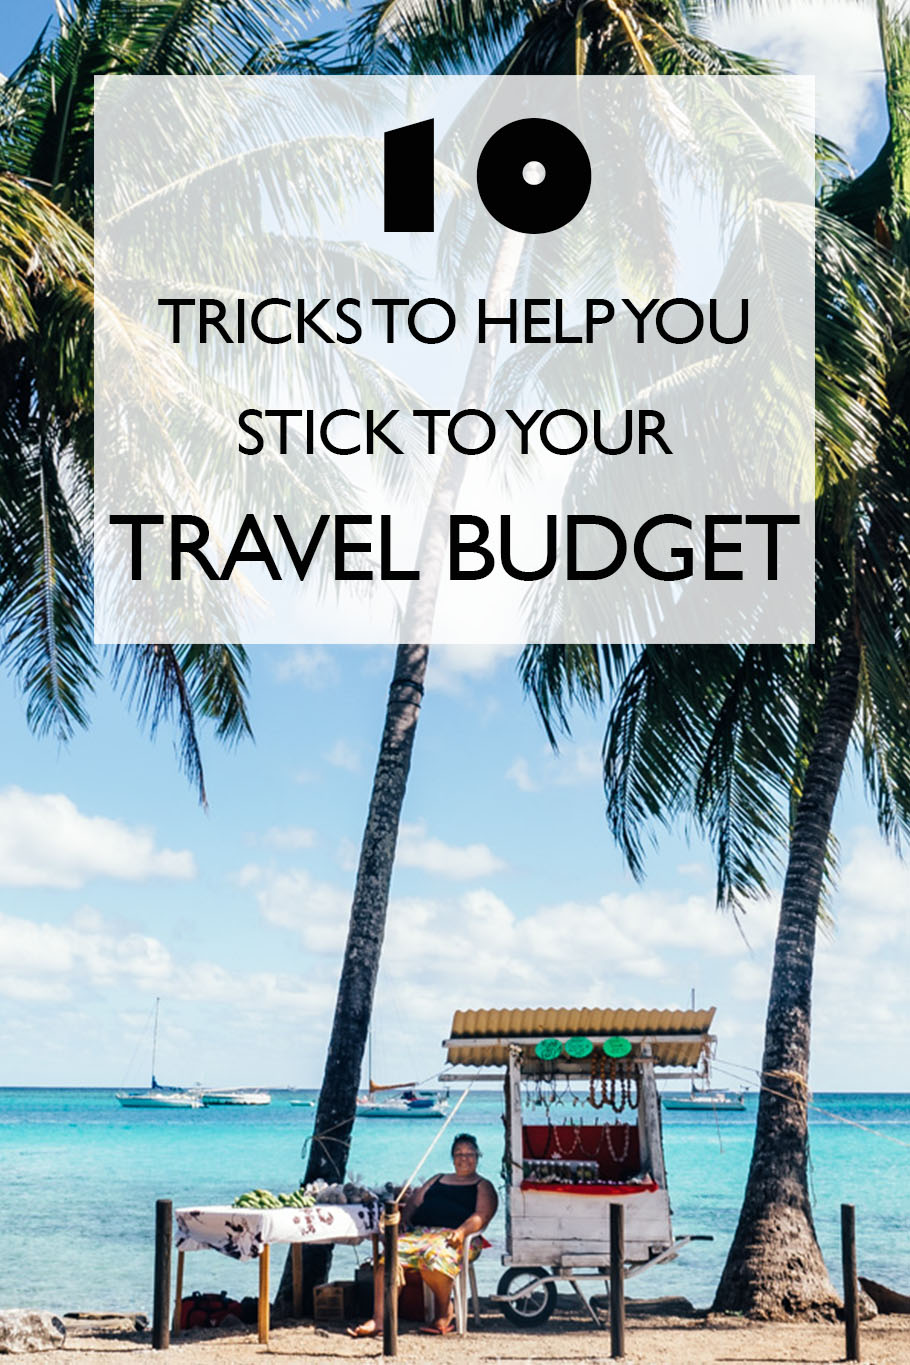 Budget Travel: 10 Tricks To Help You Stick To Your Travel Budget